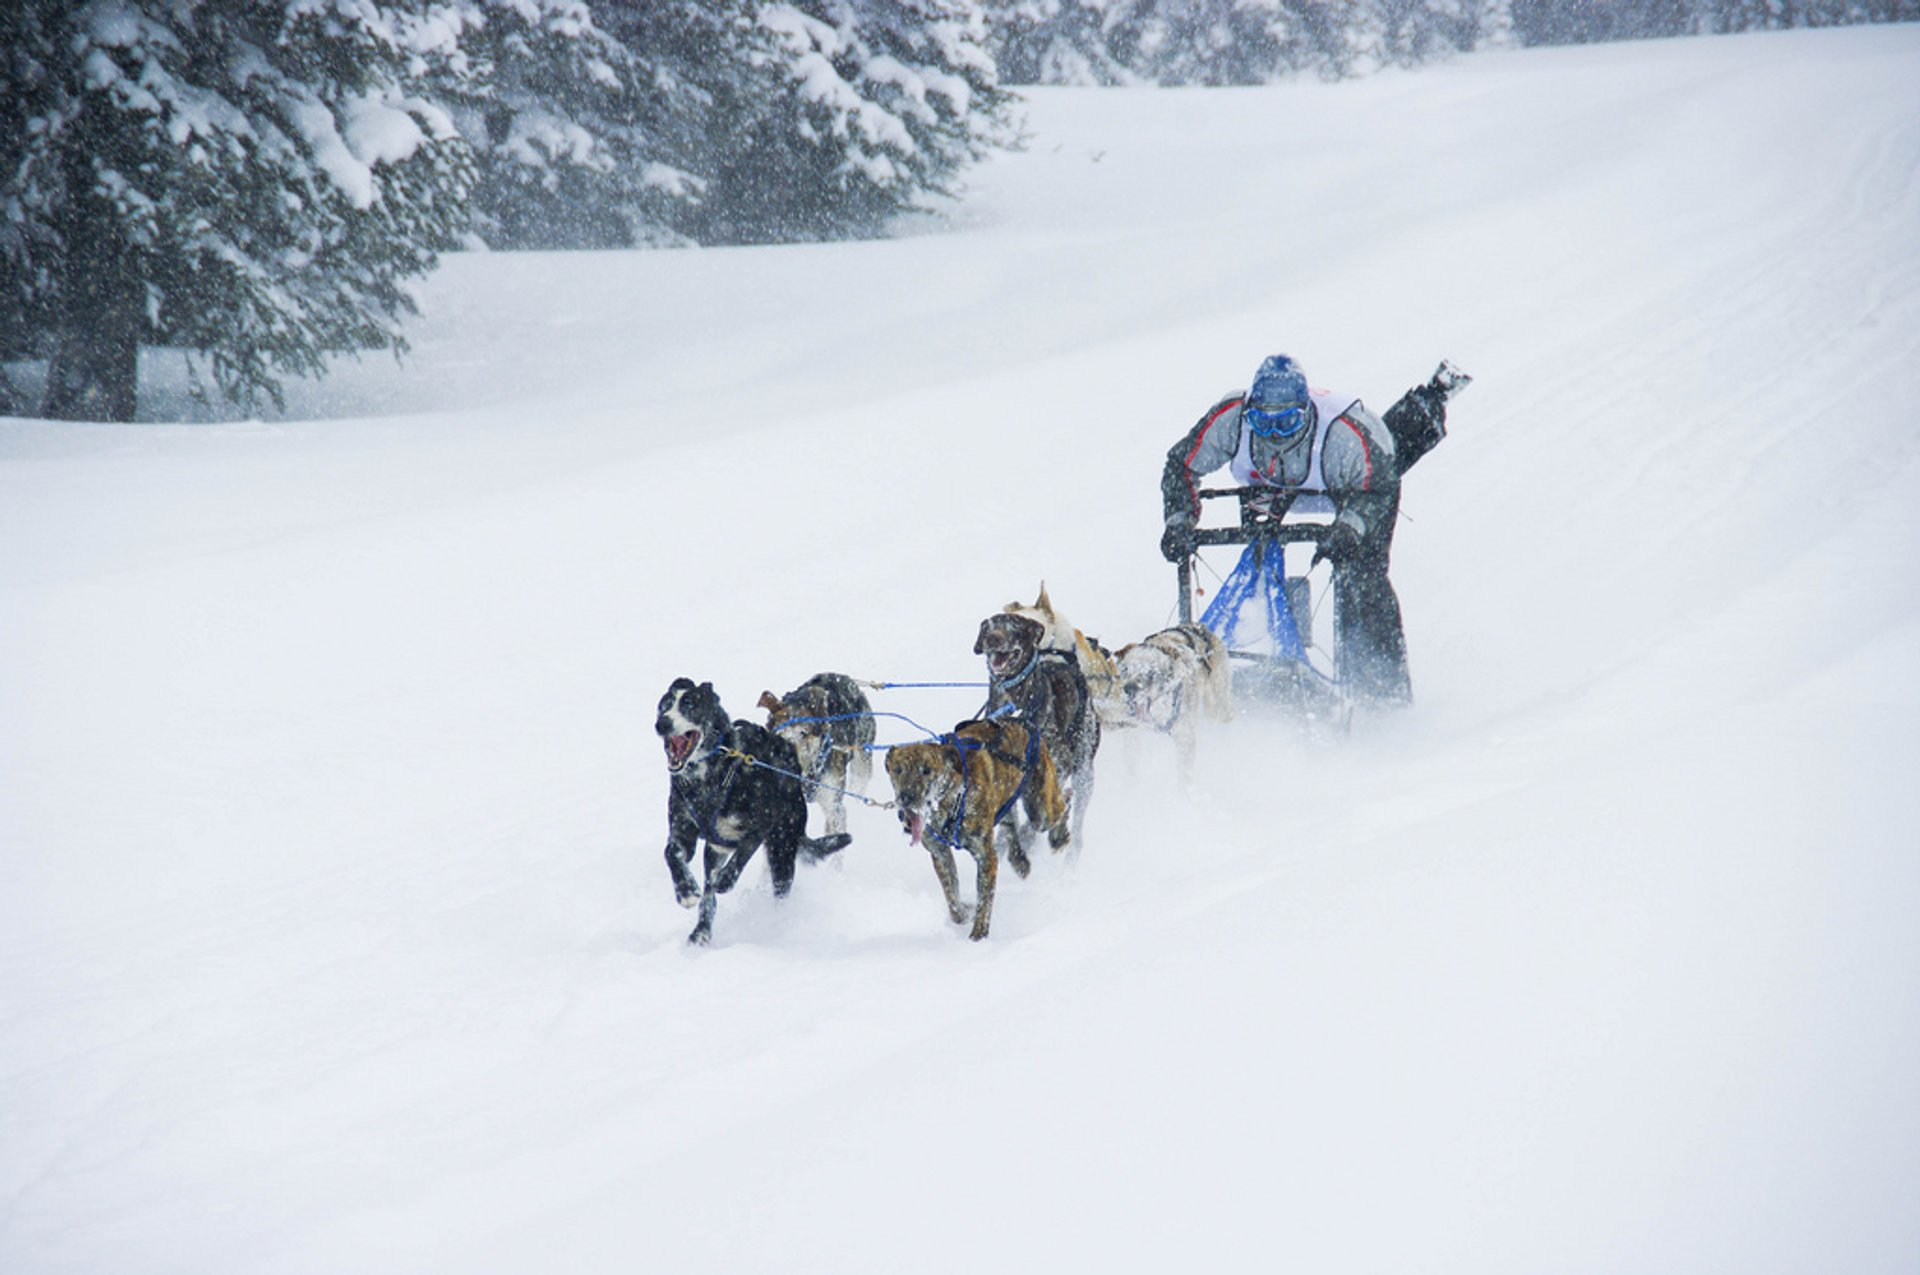 Dog Sledding & Snow Tubing in Colorado - Best Season 2020